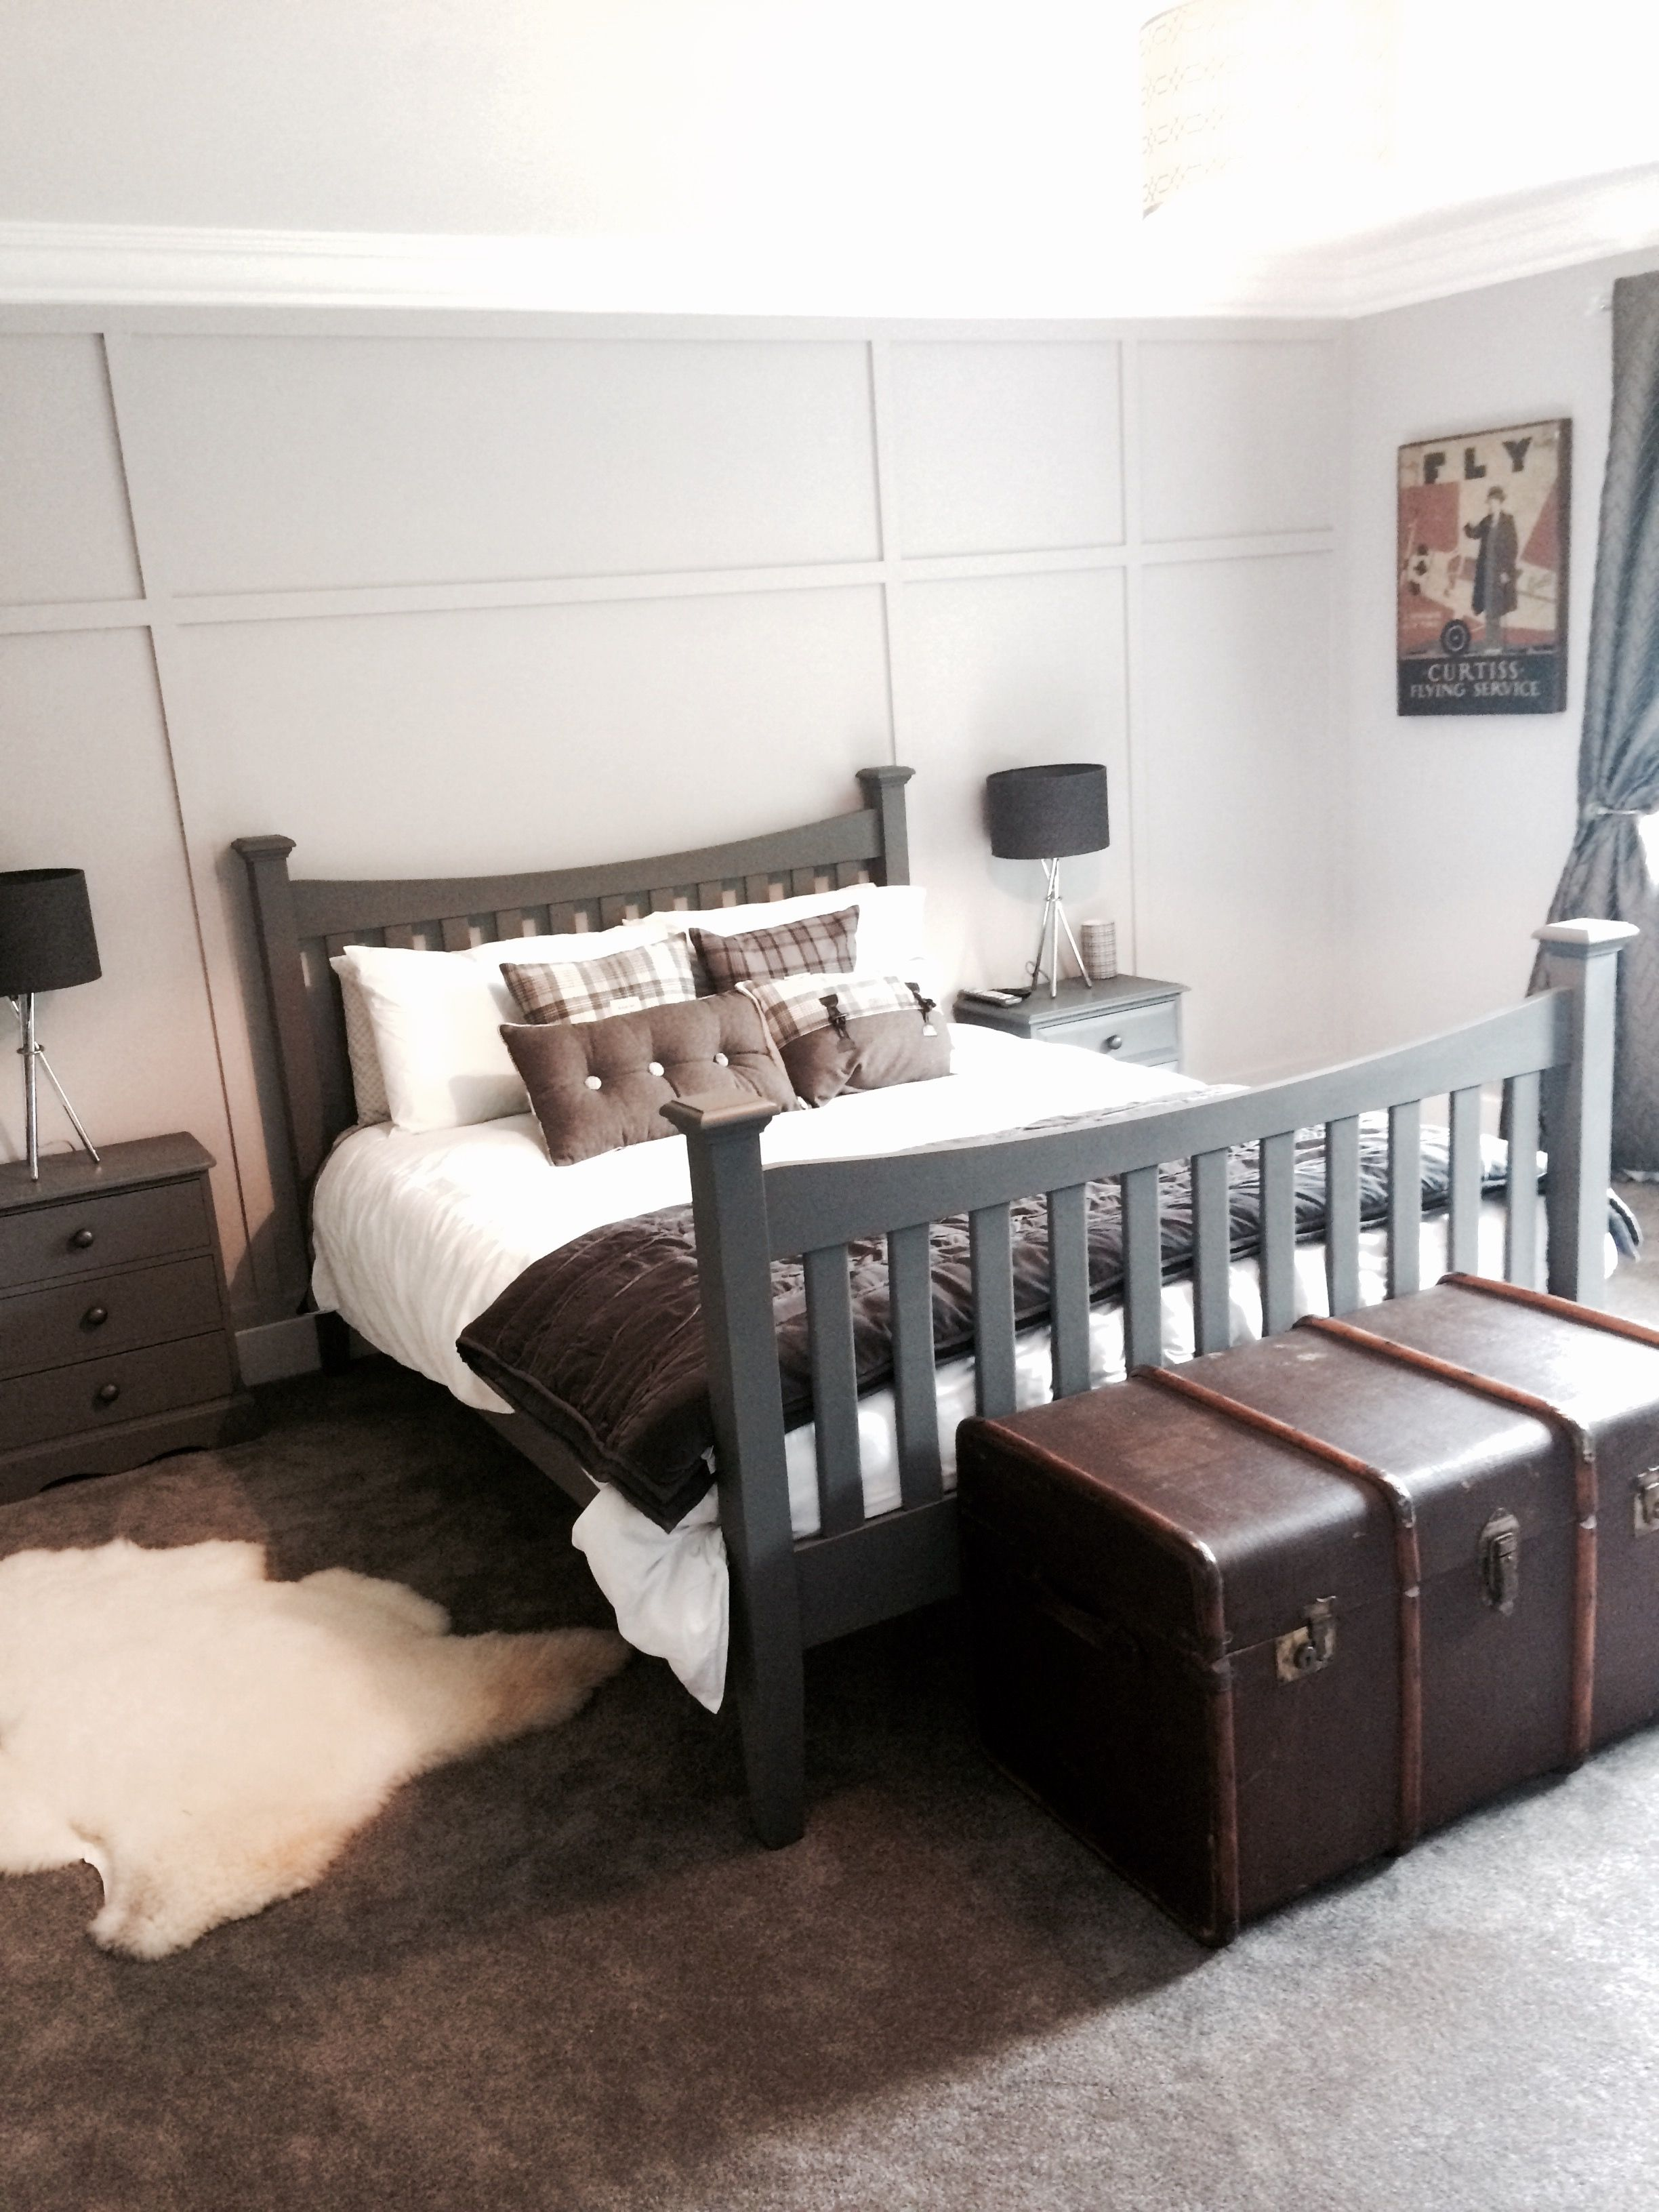 Older teenage boys grown up bedroom Grey walls with meg panelling